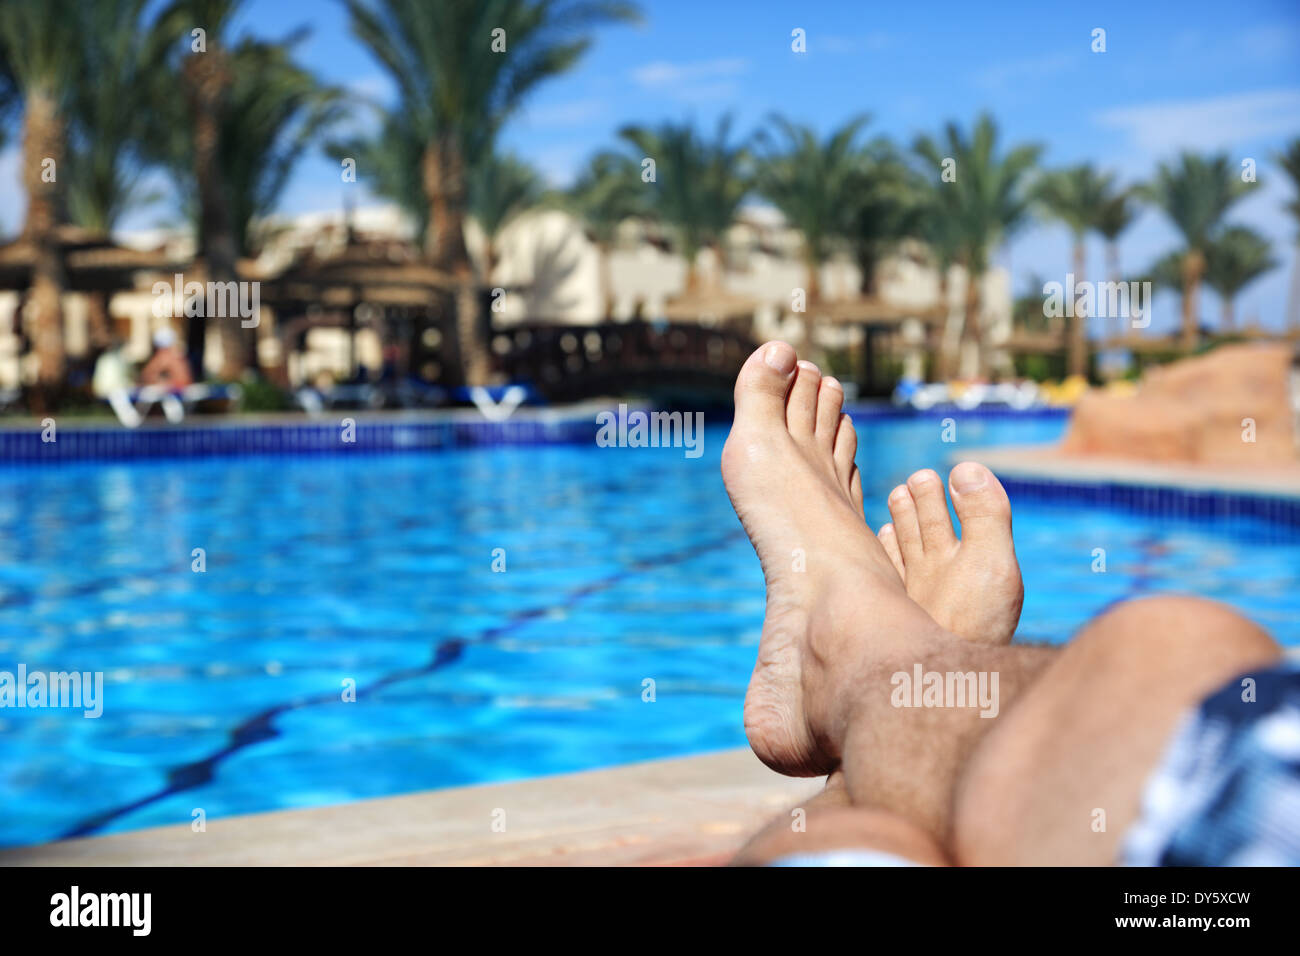 Sunbathing by swimming pool - Stock Image